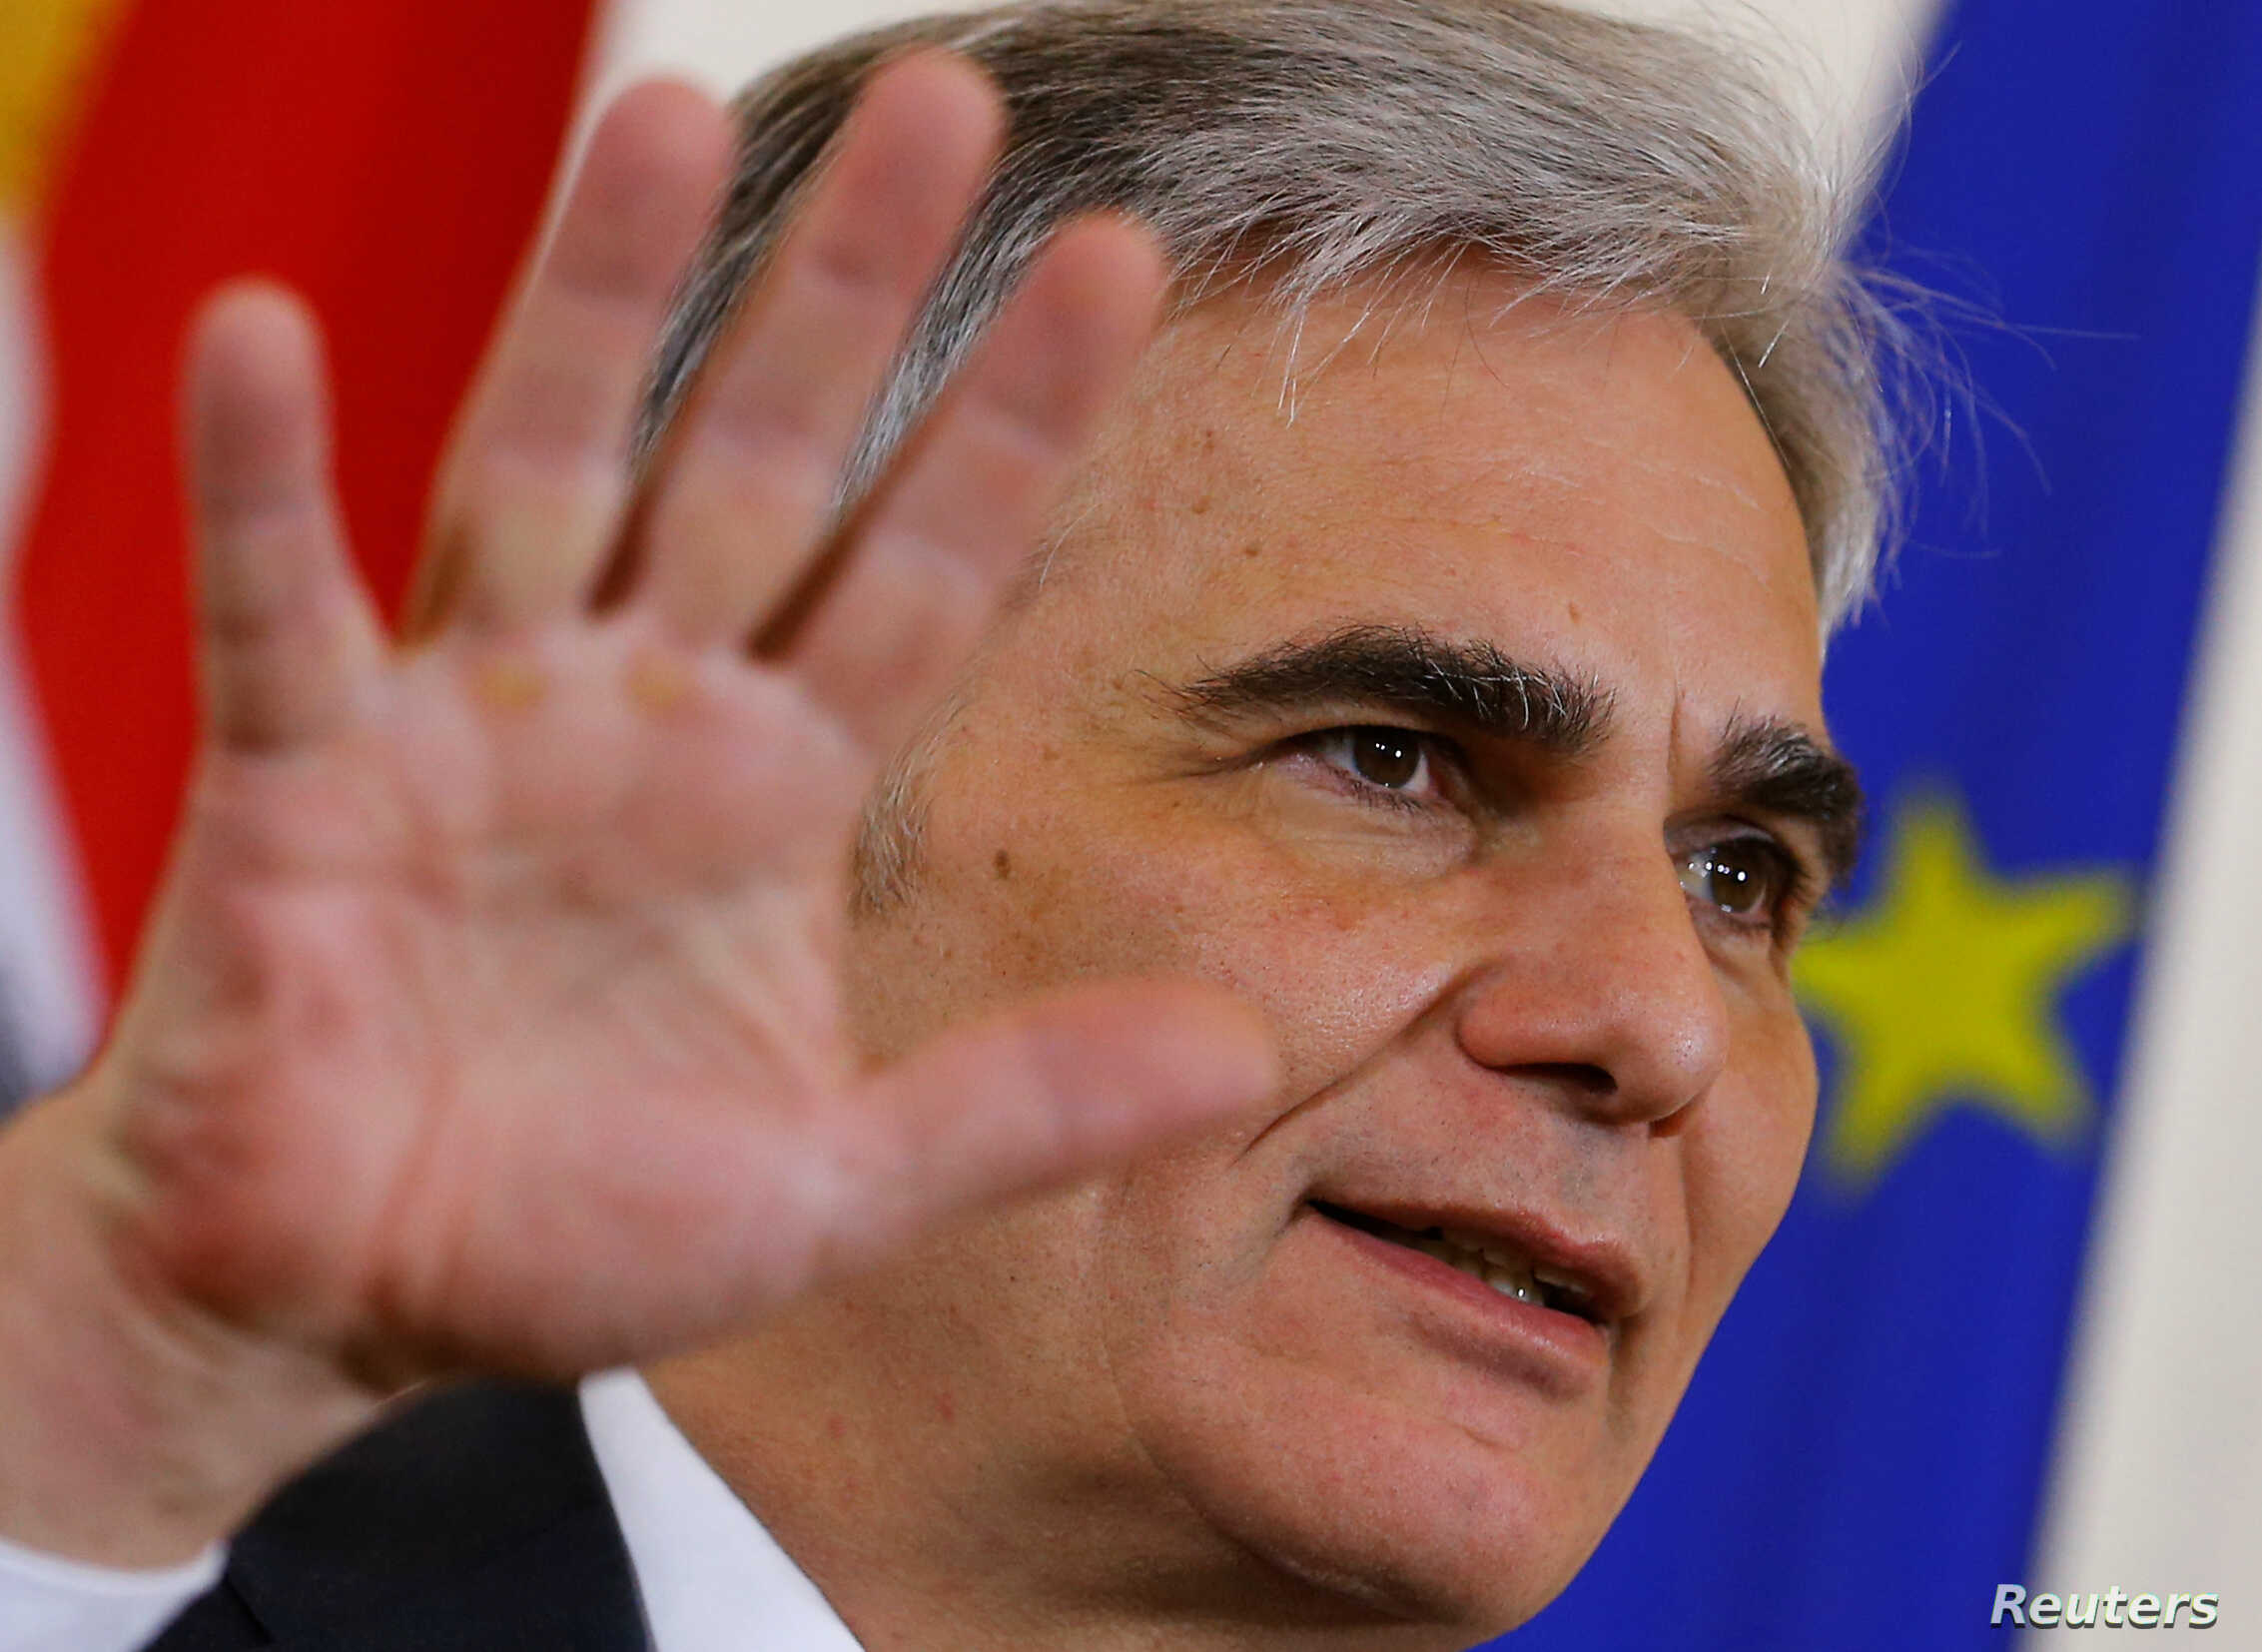 Austrian Chancellor Werner Faymann addresses a news conference after a cabinet meeting in Vienna, Feb. 16, 2016.